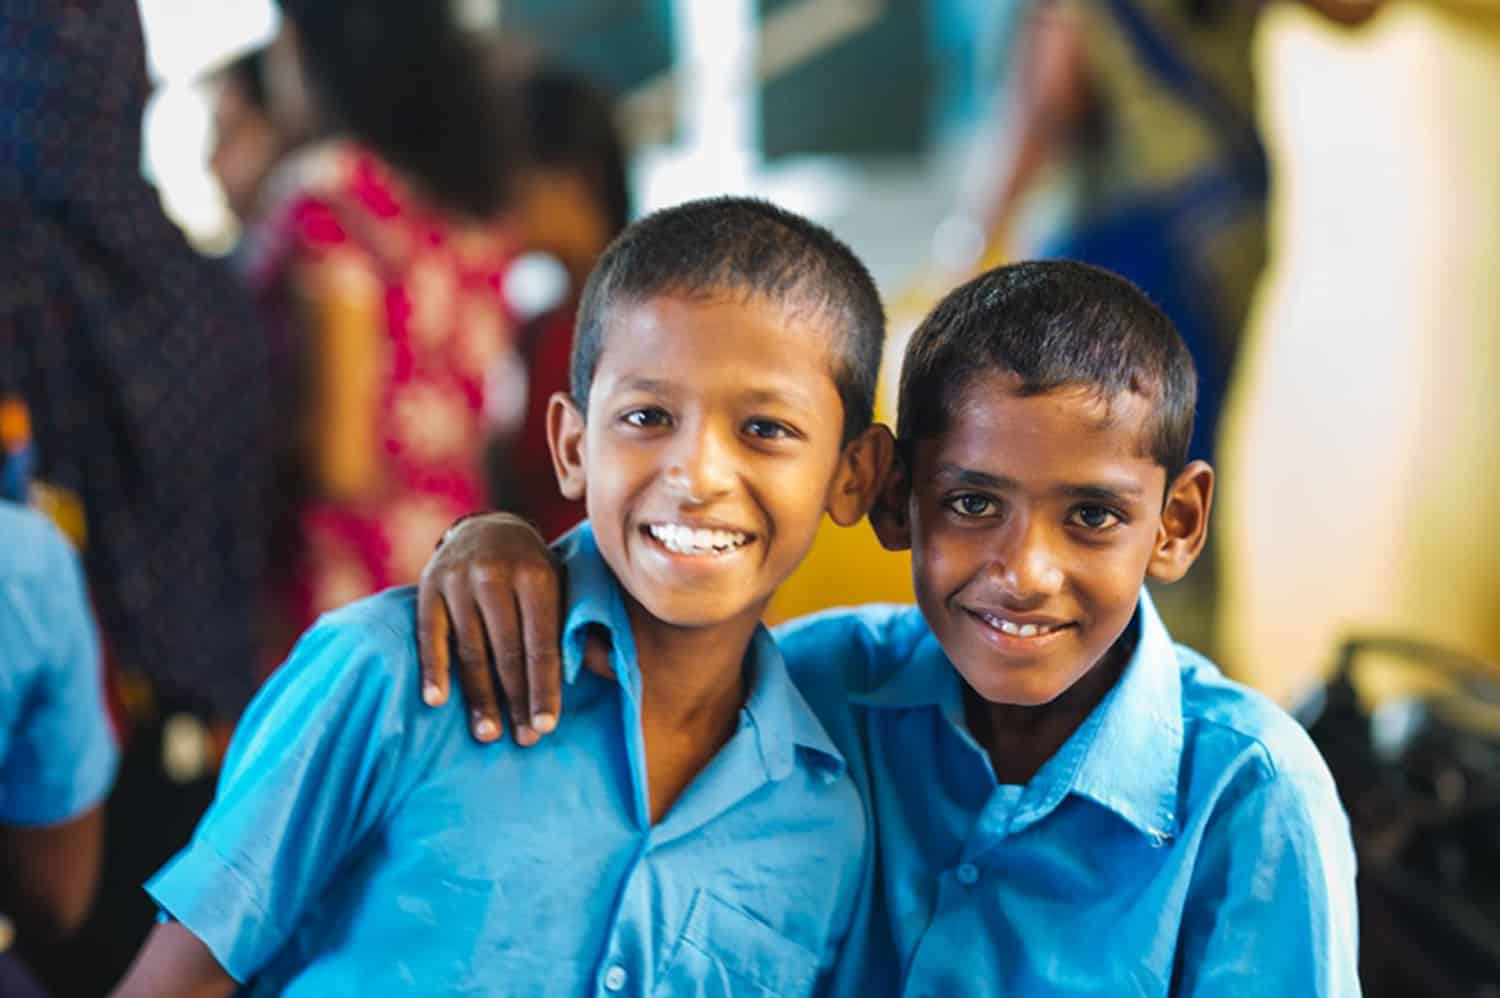 ICRISAT and the Akshaya Patra Foundation are joining forces to improve nutrition and food security in schools with nutritious mid-day meals.